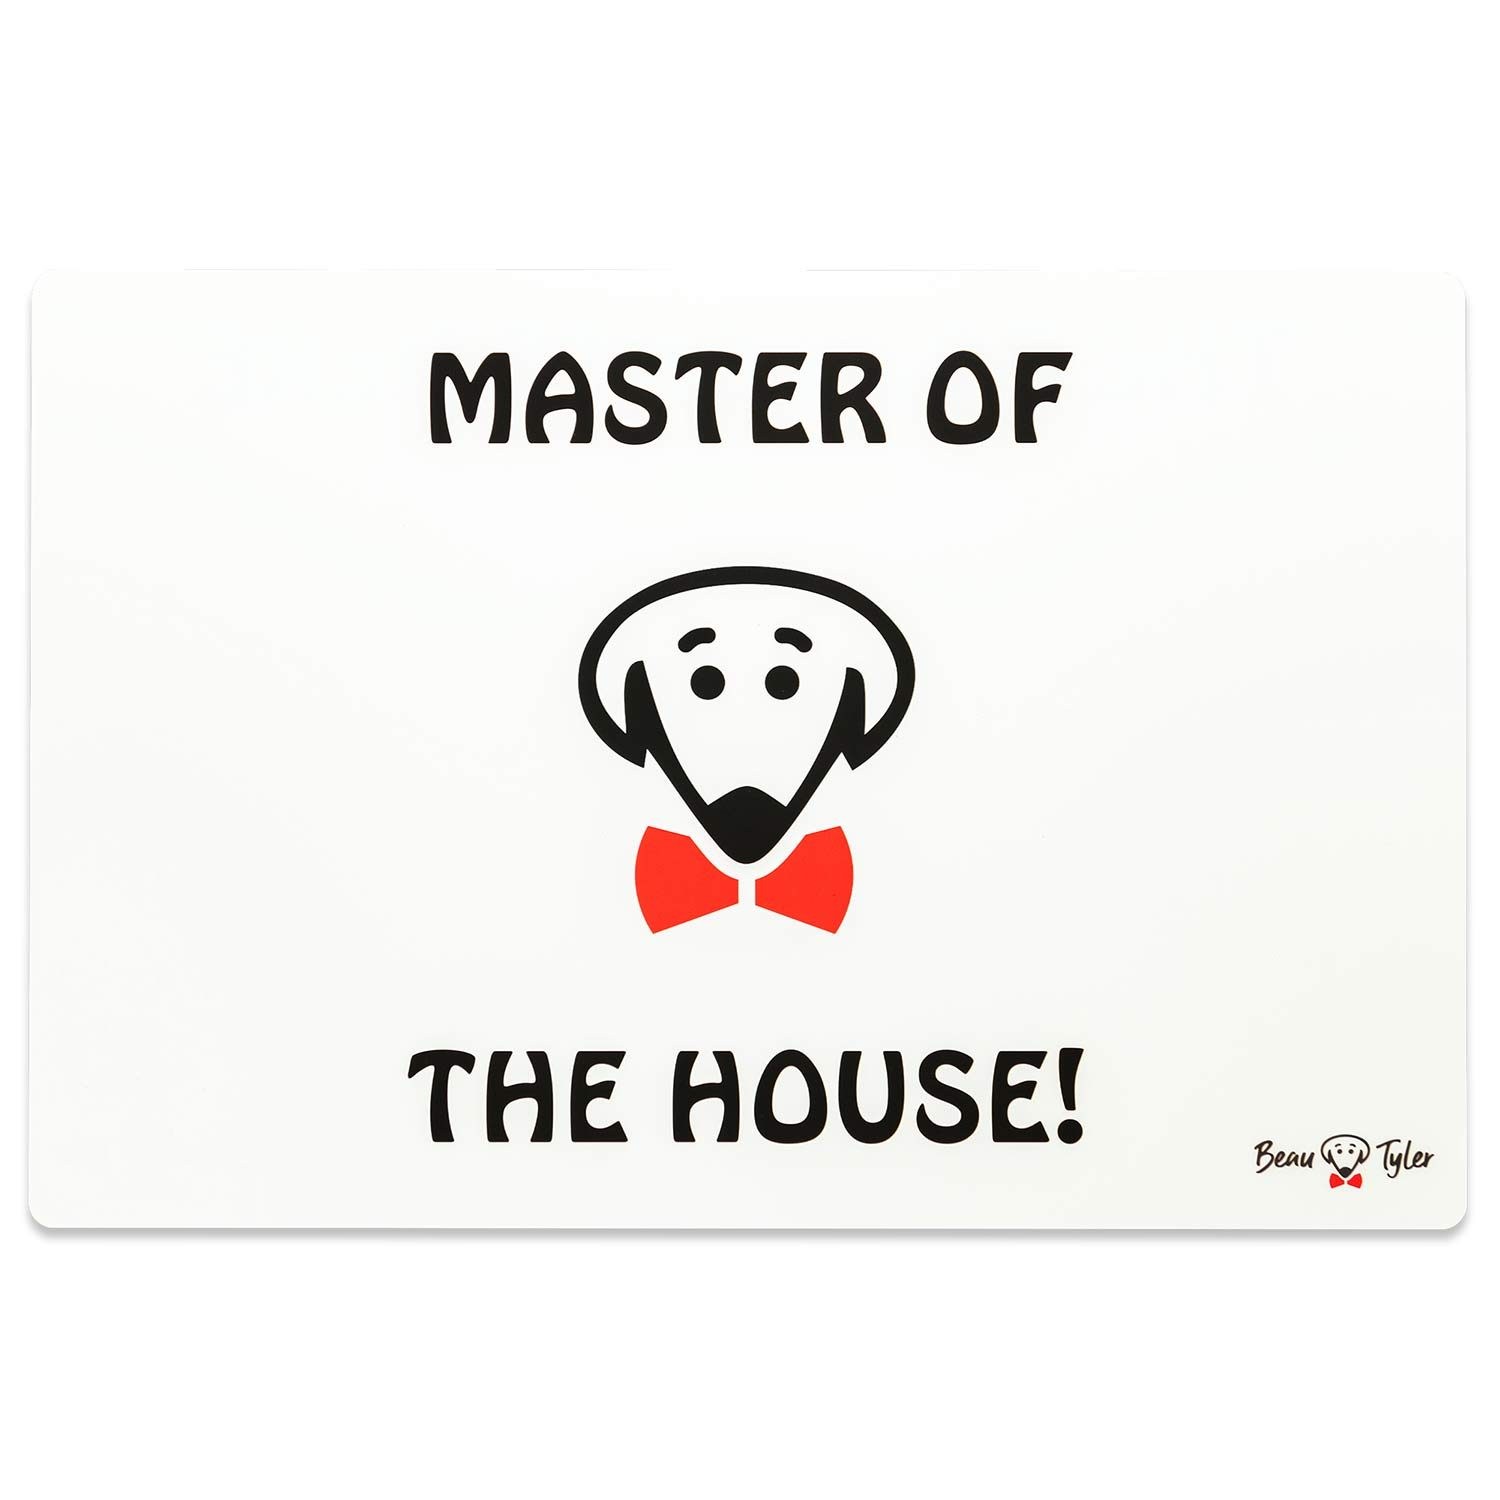 The Boss Eats Here pet mat (Master of the House! on back) in white by Beau Tyler